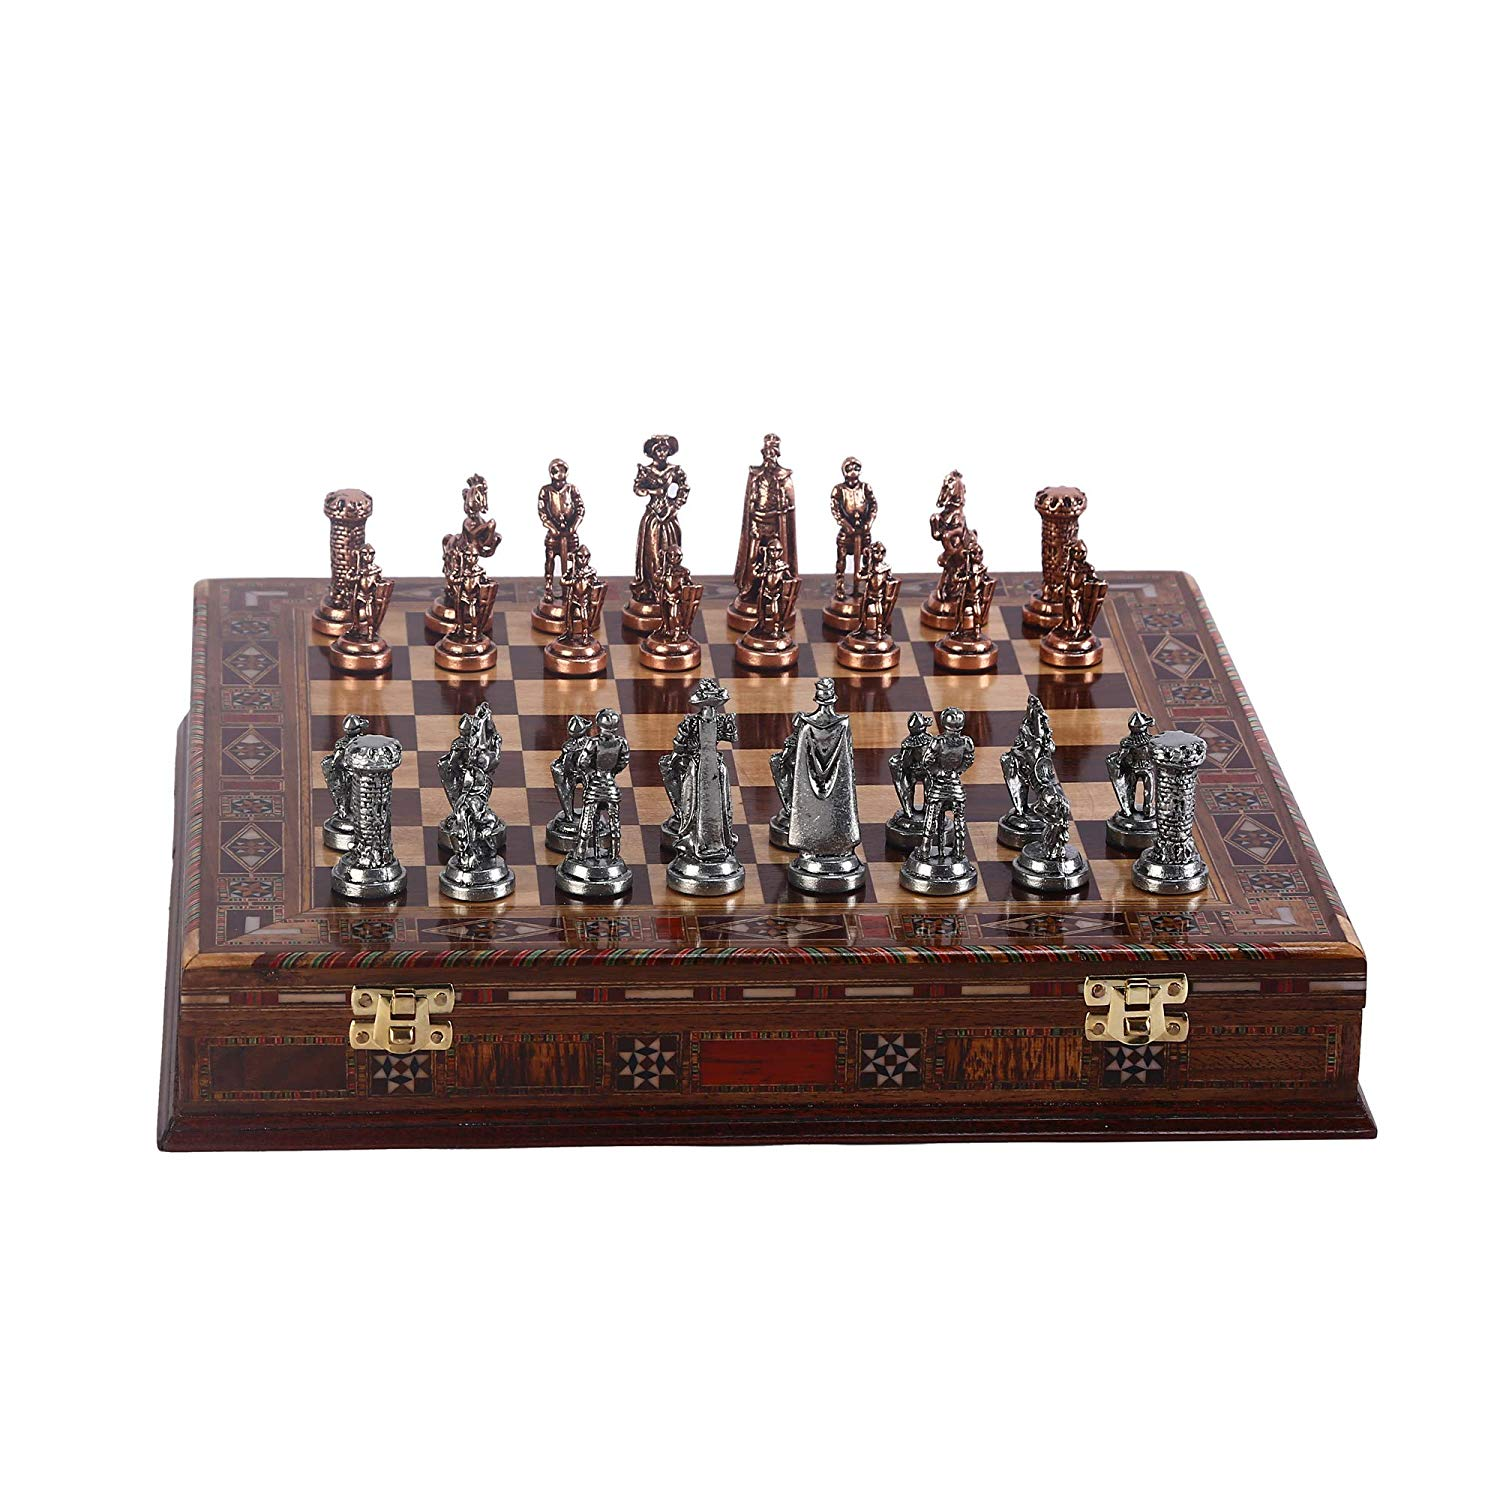 Medieval British Army Antique Copper Metal Chess Set,Handmade Pieces,Natural Solid Wooden Chess Board,Storage Inside King 7 Cm